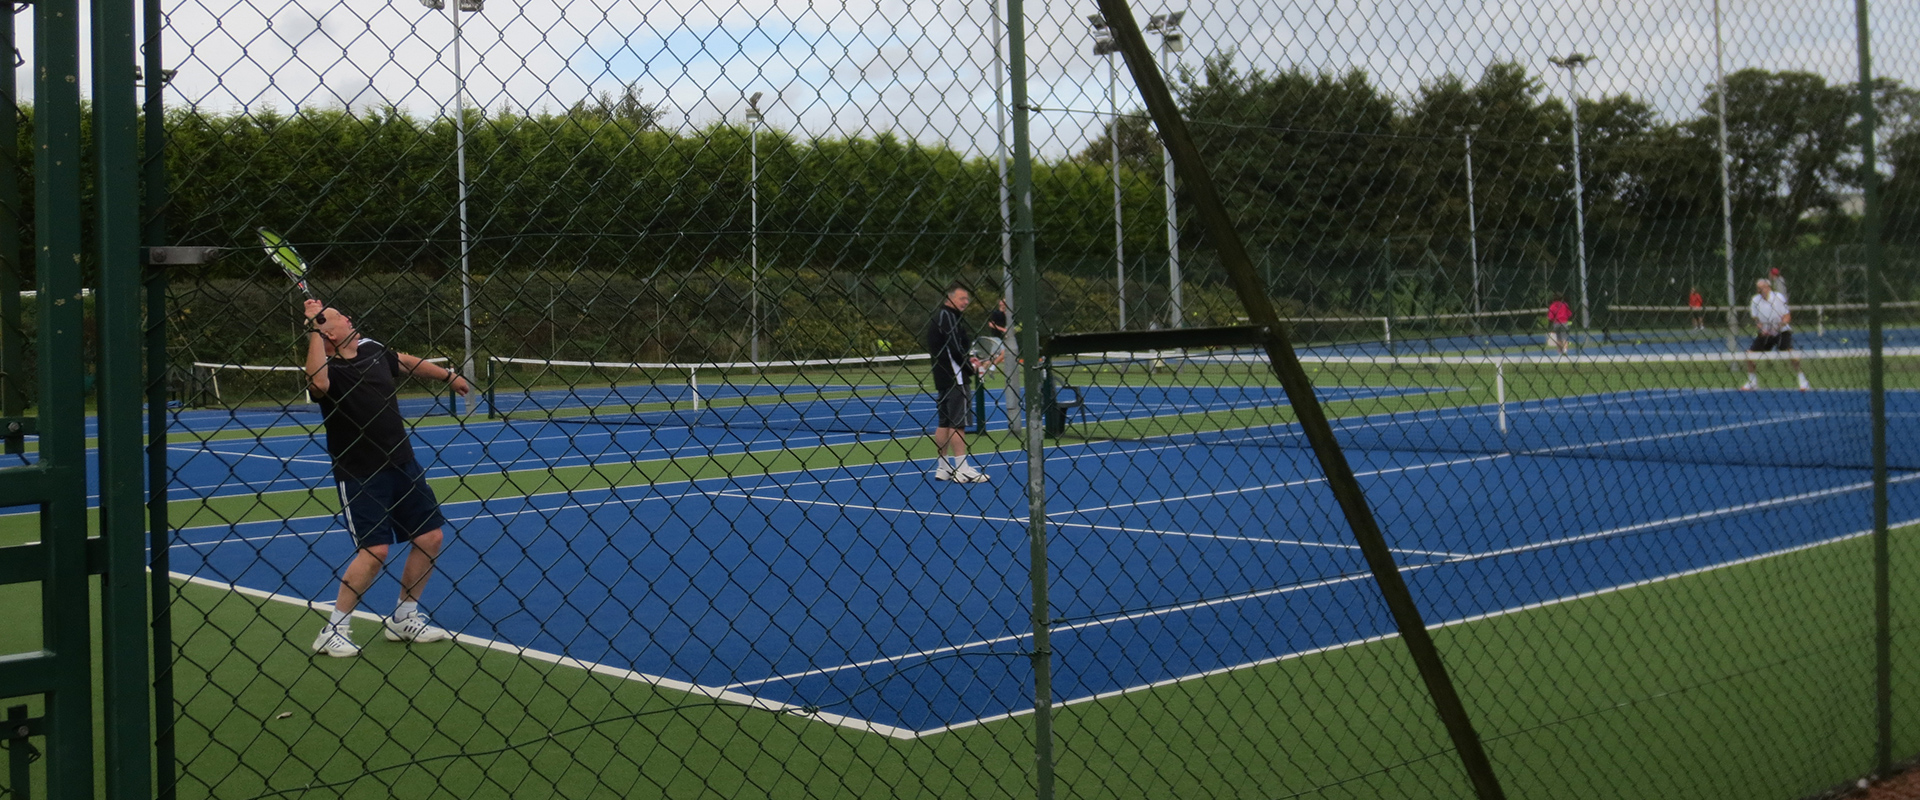 Library 2019 Tennis 05